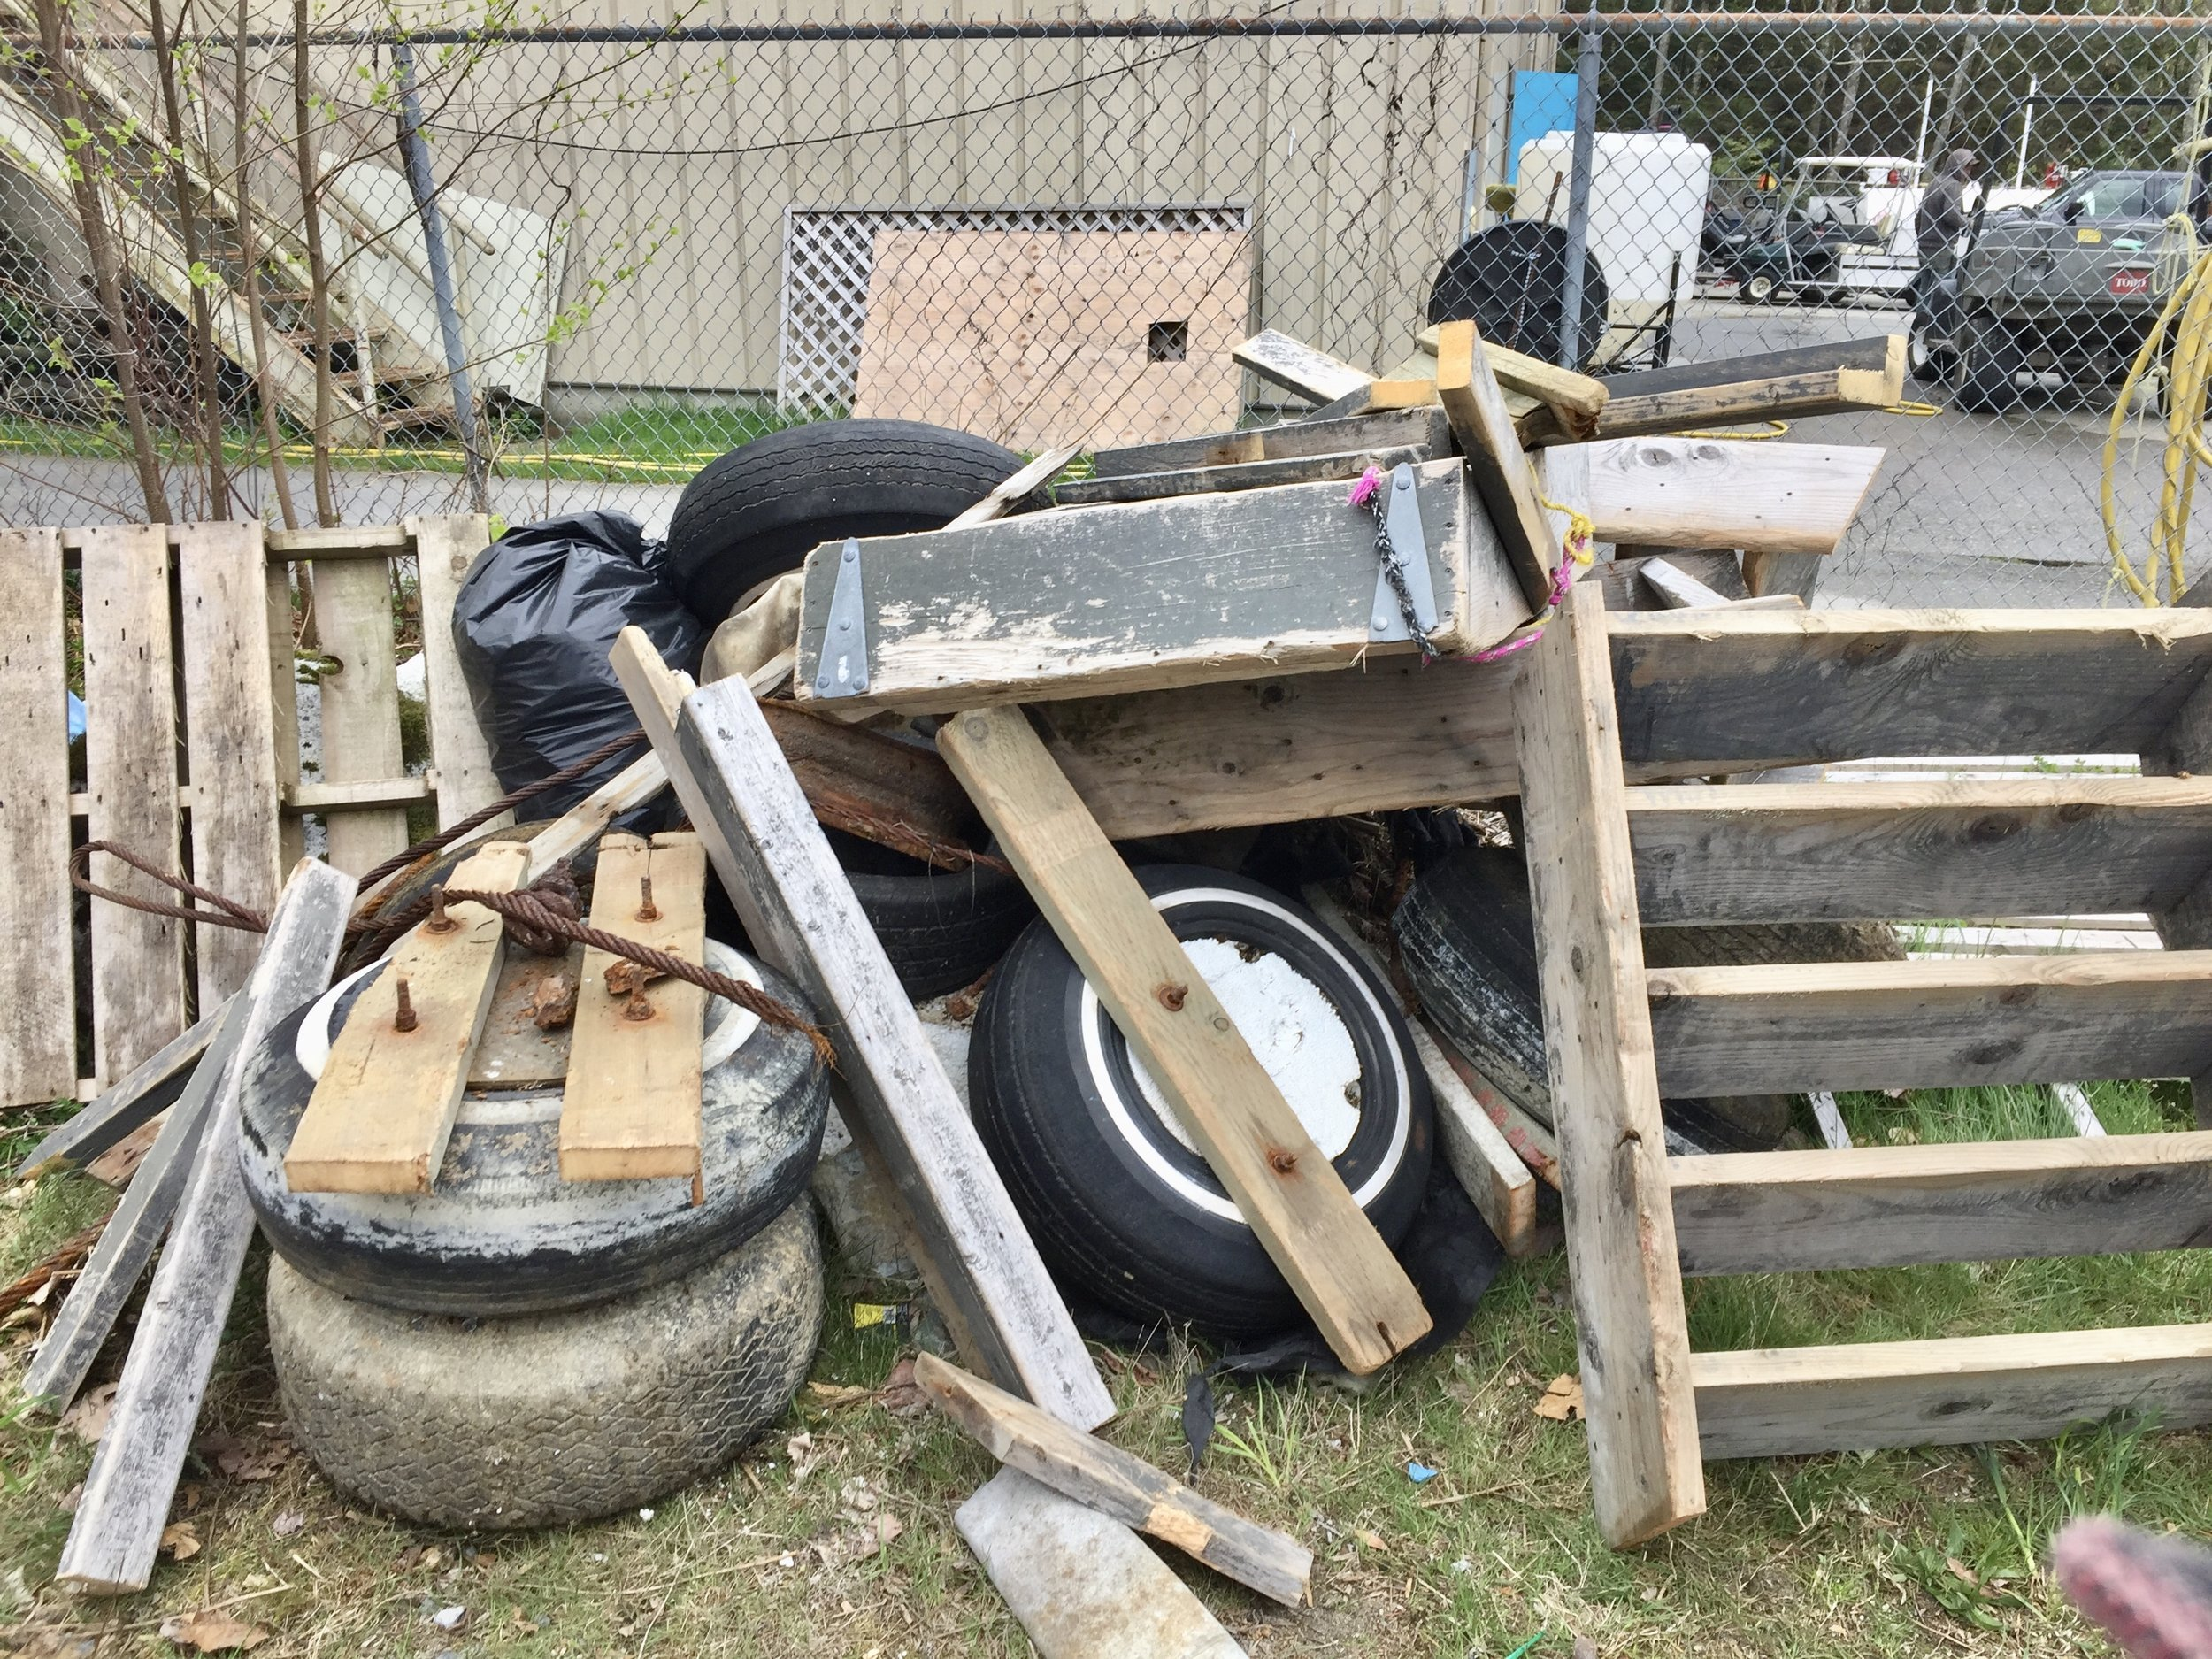 A pile of marine debris; tires embedded with styrofoam, metal and wood, pressure treated wood, metal and plastic.